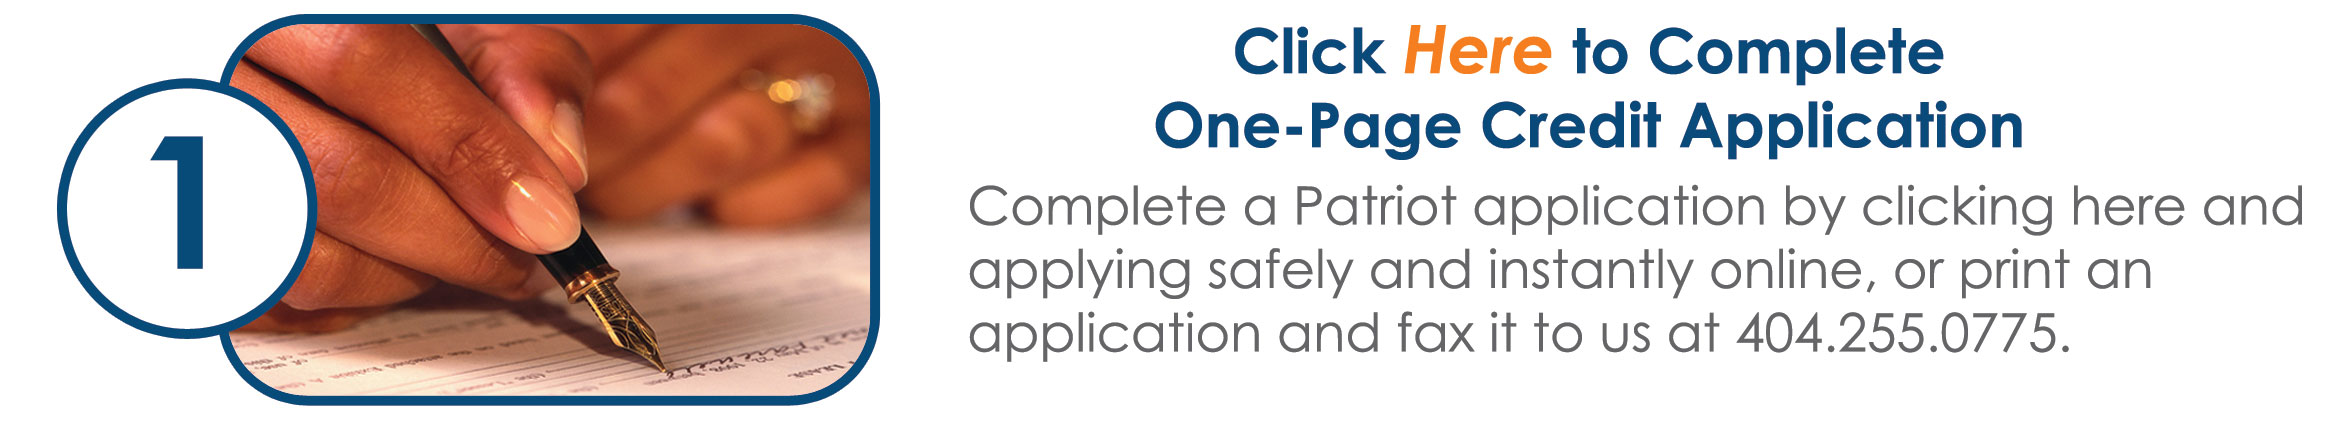 Click here to complete one-page credit application